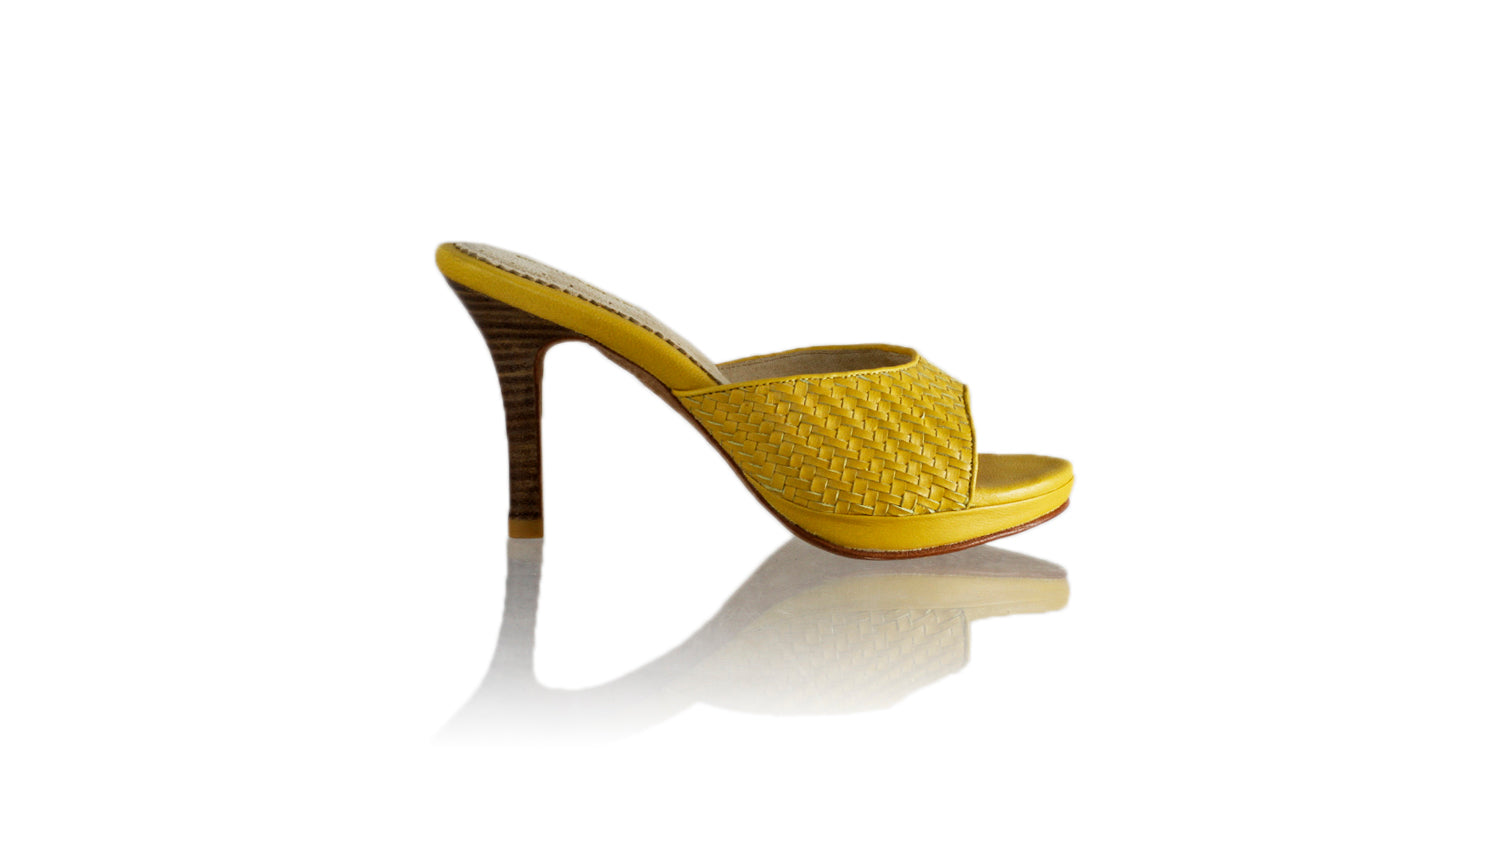 Leather-shoes-Gita Woven 90mm SH PF - Yellow-sandals higheel-NILUH DJELANTIK-NILUH DJELANTIK